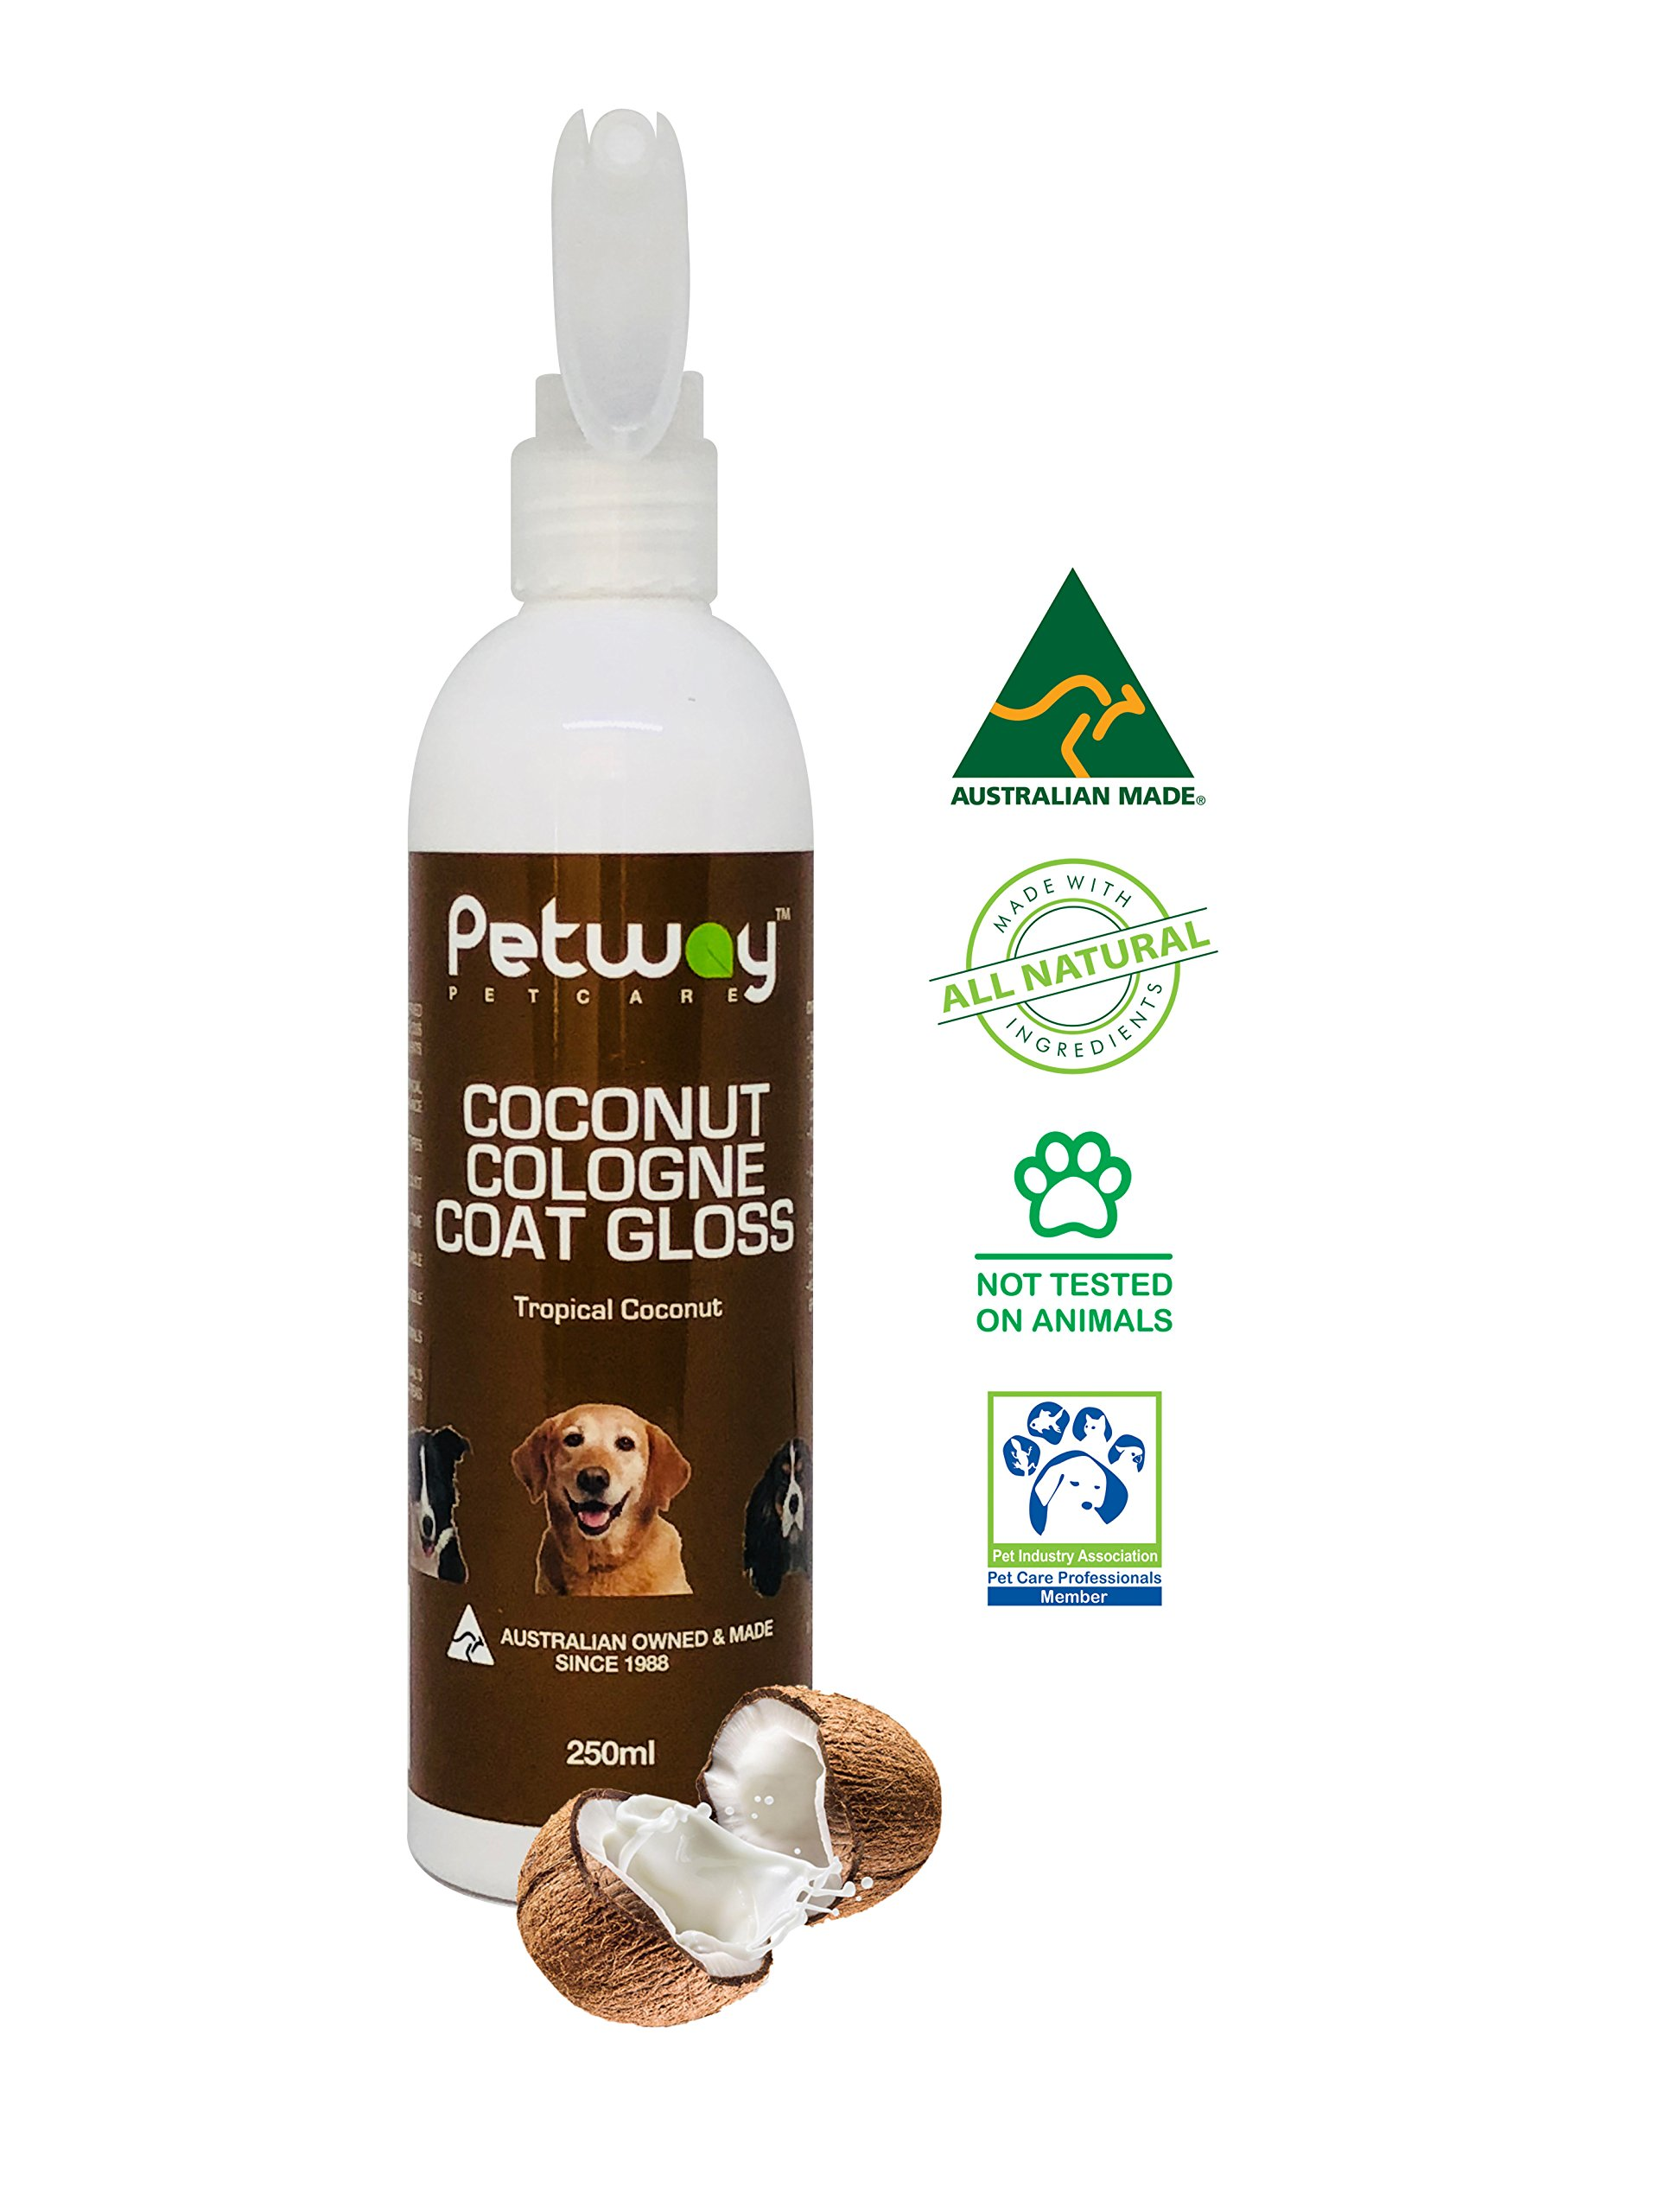 PETWAY Petcare Coconut Cologne Coat Gloss - Natural Cosmetic Dog Cologne Spray with Coconut for Conditioning Qualities, Dog Gloss with Deodorizer, Pet Odor Eliminator and Dog Grooming Spray - 250ml by PETWAY